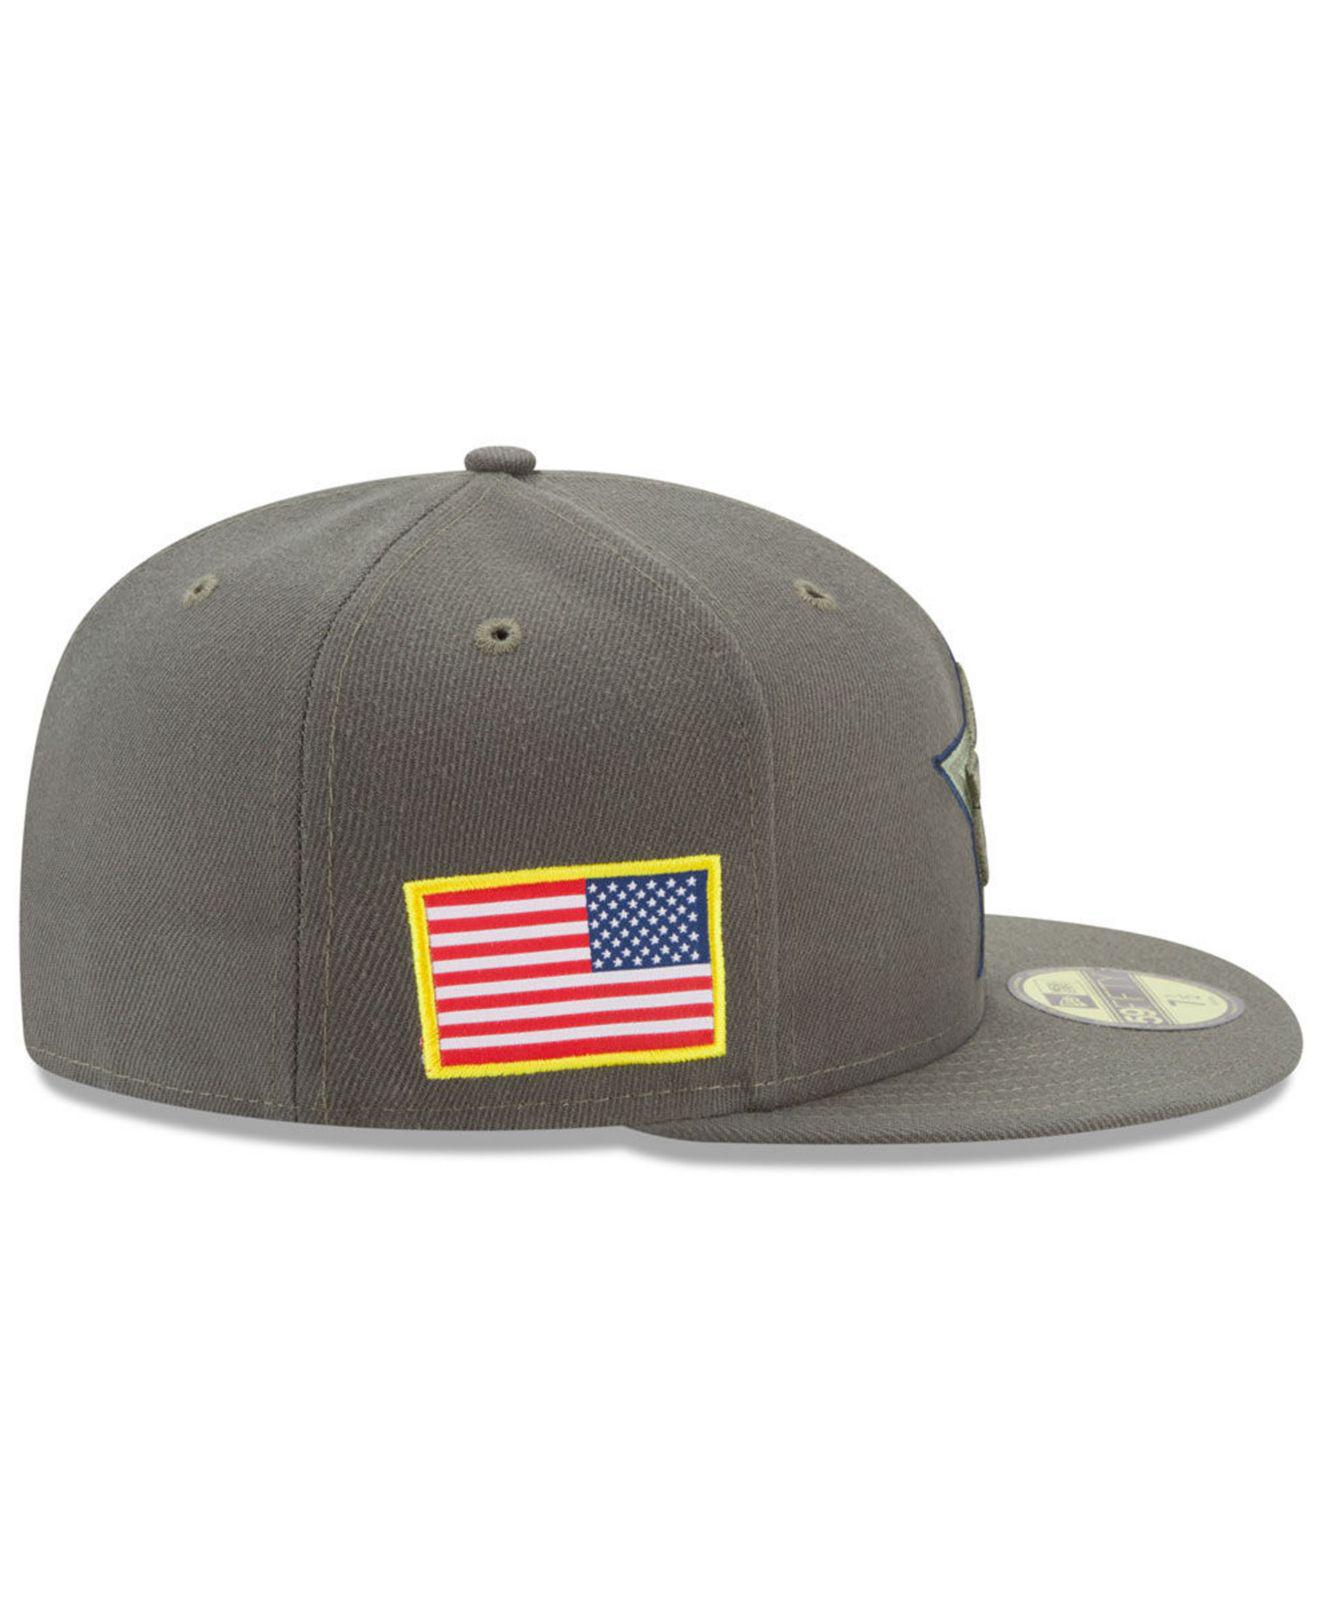 32ce5faa82909 Lyst - KTZ Dallas Cowboys Salute To Service 59fifty Fitted Cap in ...